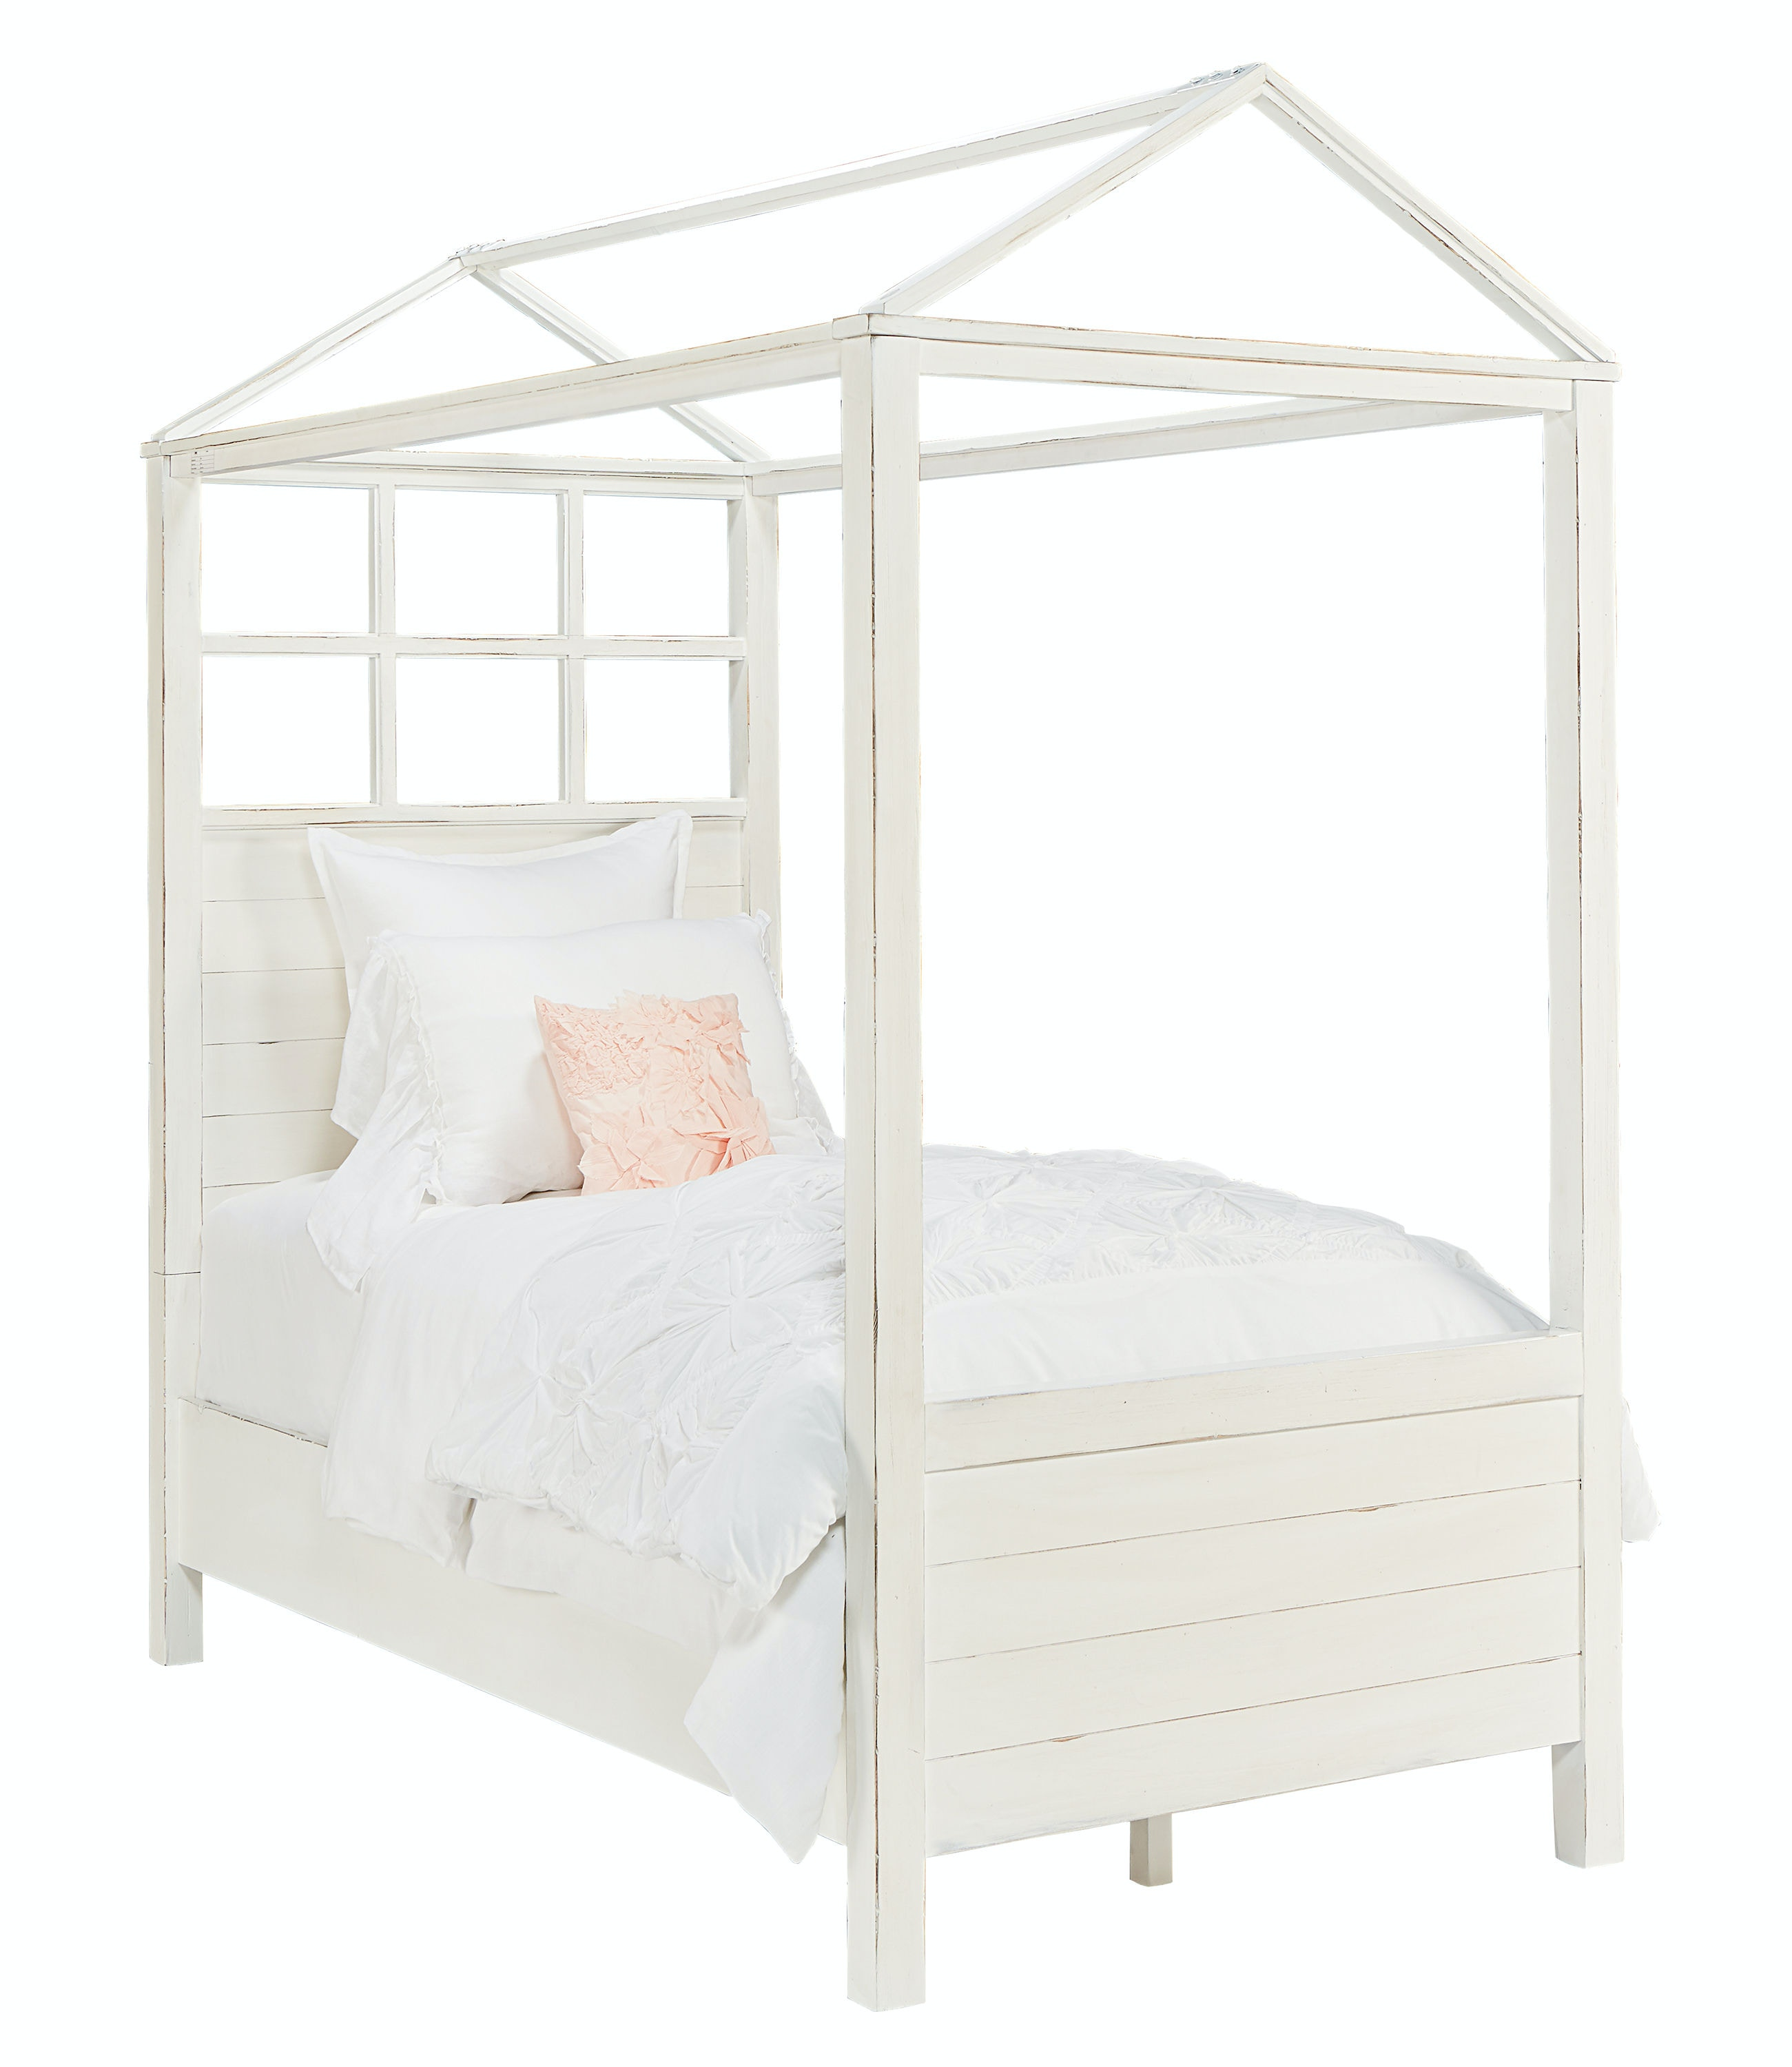 Magnolia Kids - Boho Playhouse Canopy Bed - JOu0027S WHITE - TWIN KT62729  sc 1 st  Star Furniture & Bedroom Magnolia Kids - Boho Playhouse Canopy Bed - JOu0027S WHITE - TWIN